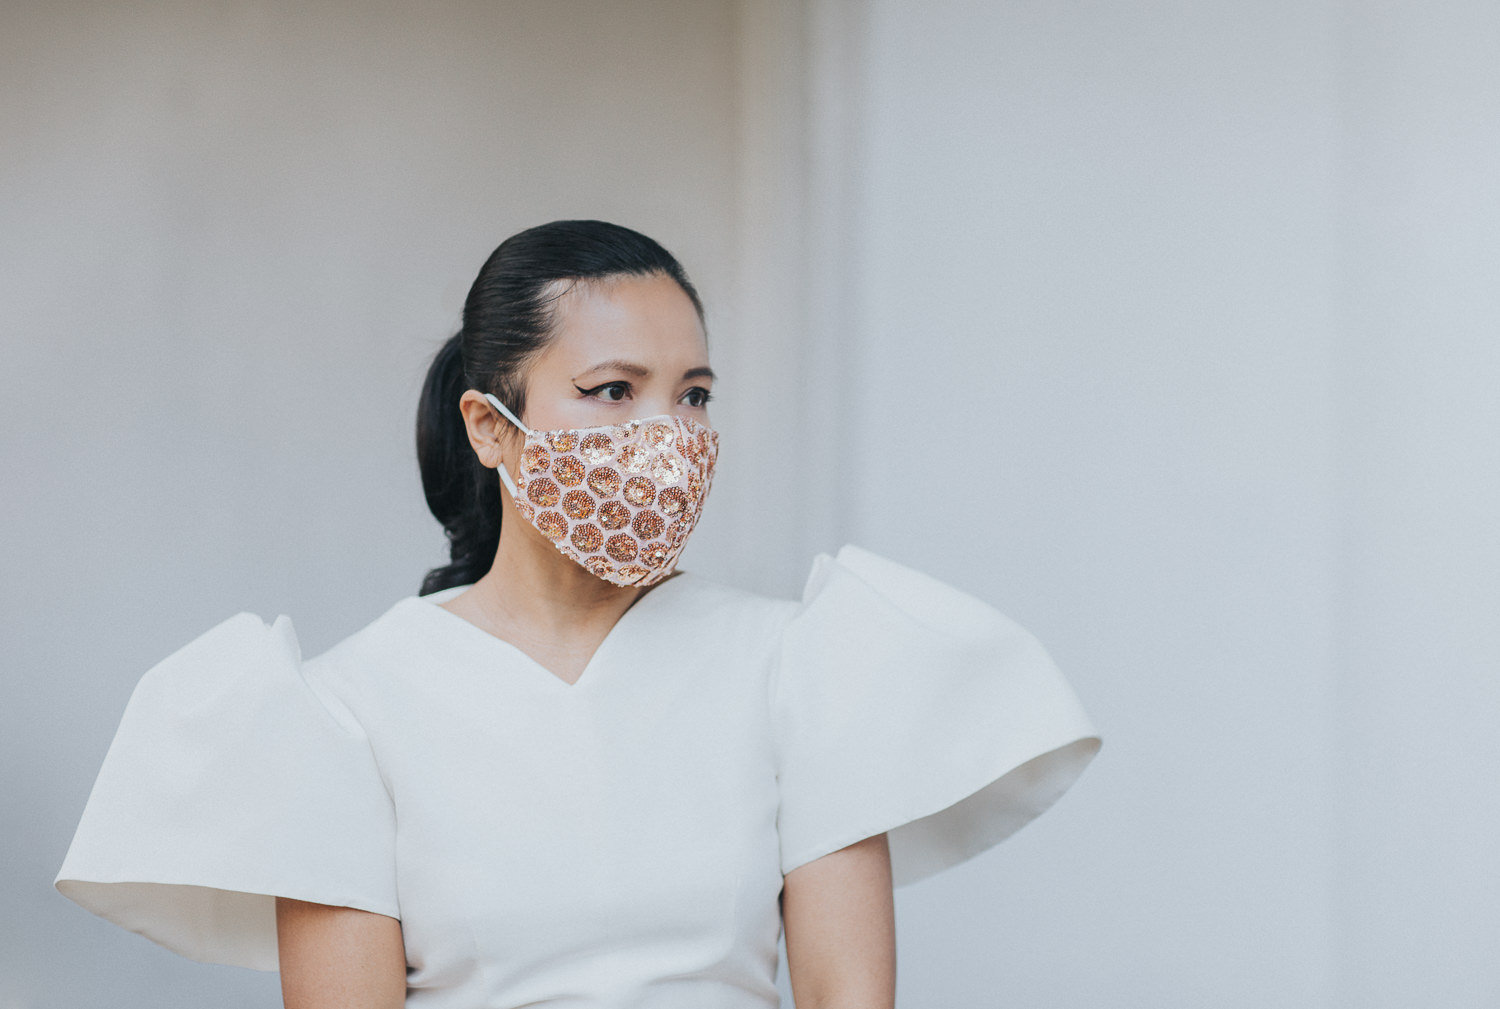 Luxury facemask - most luxurious masks you can buy in the world - extreme luxury mask